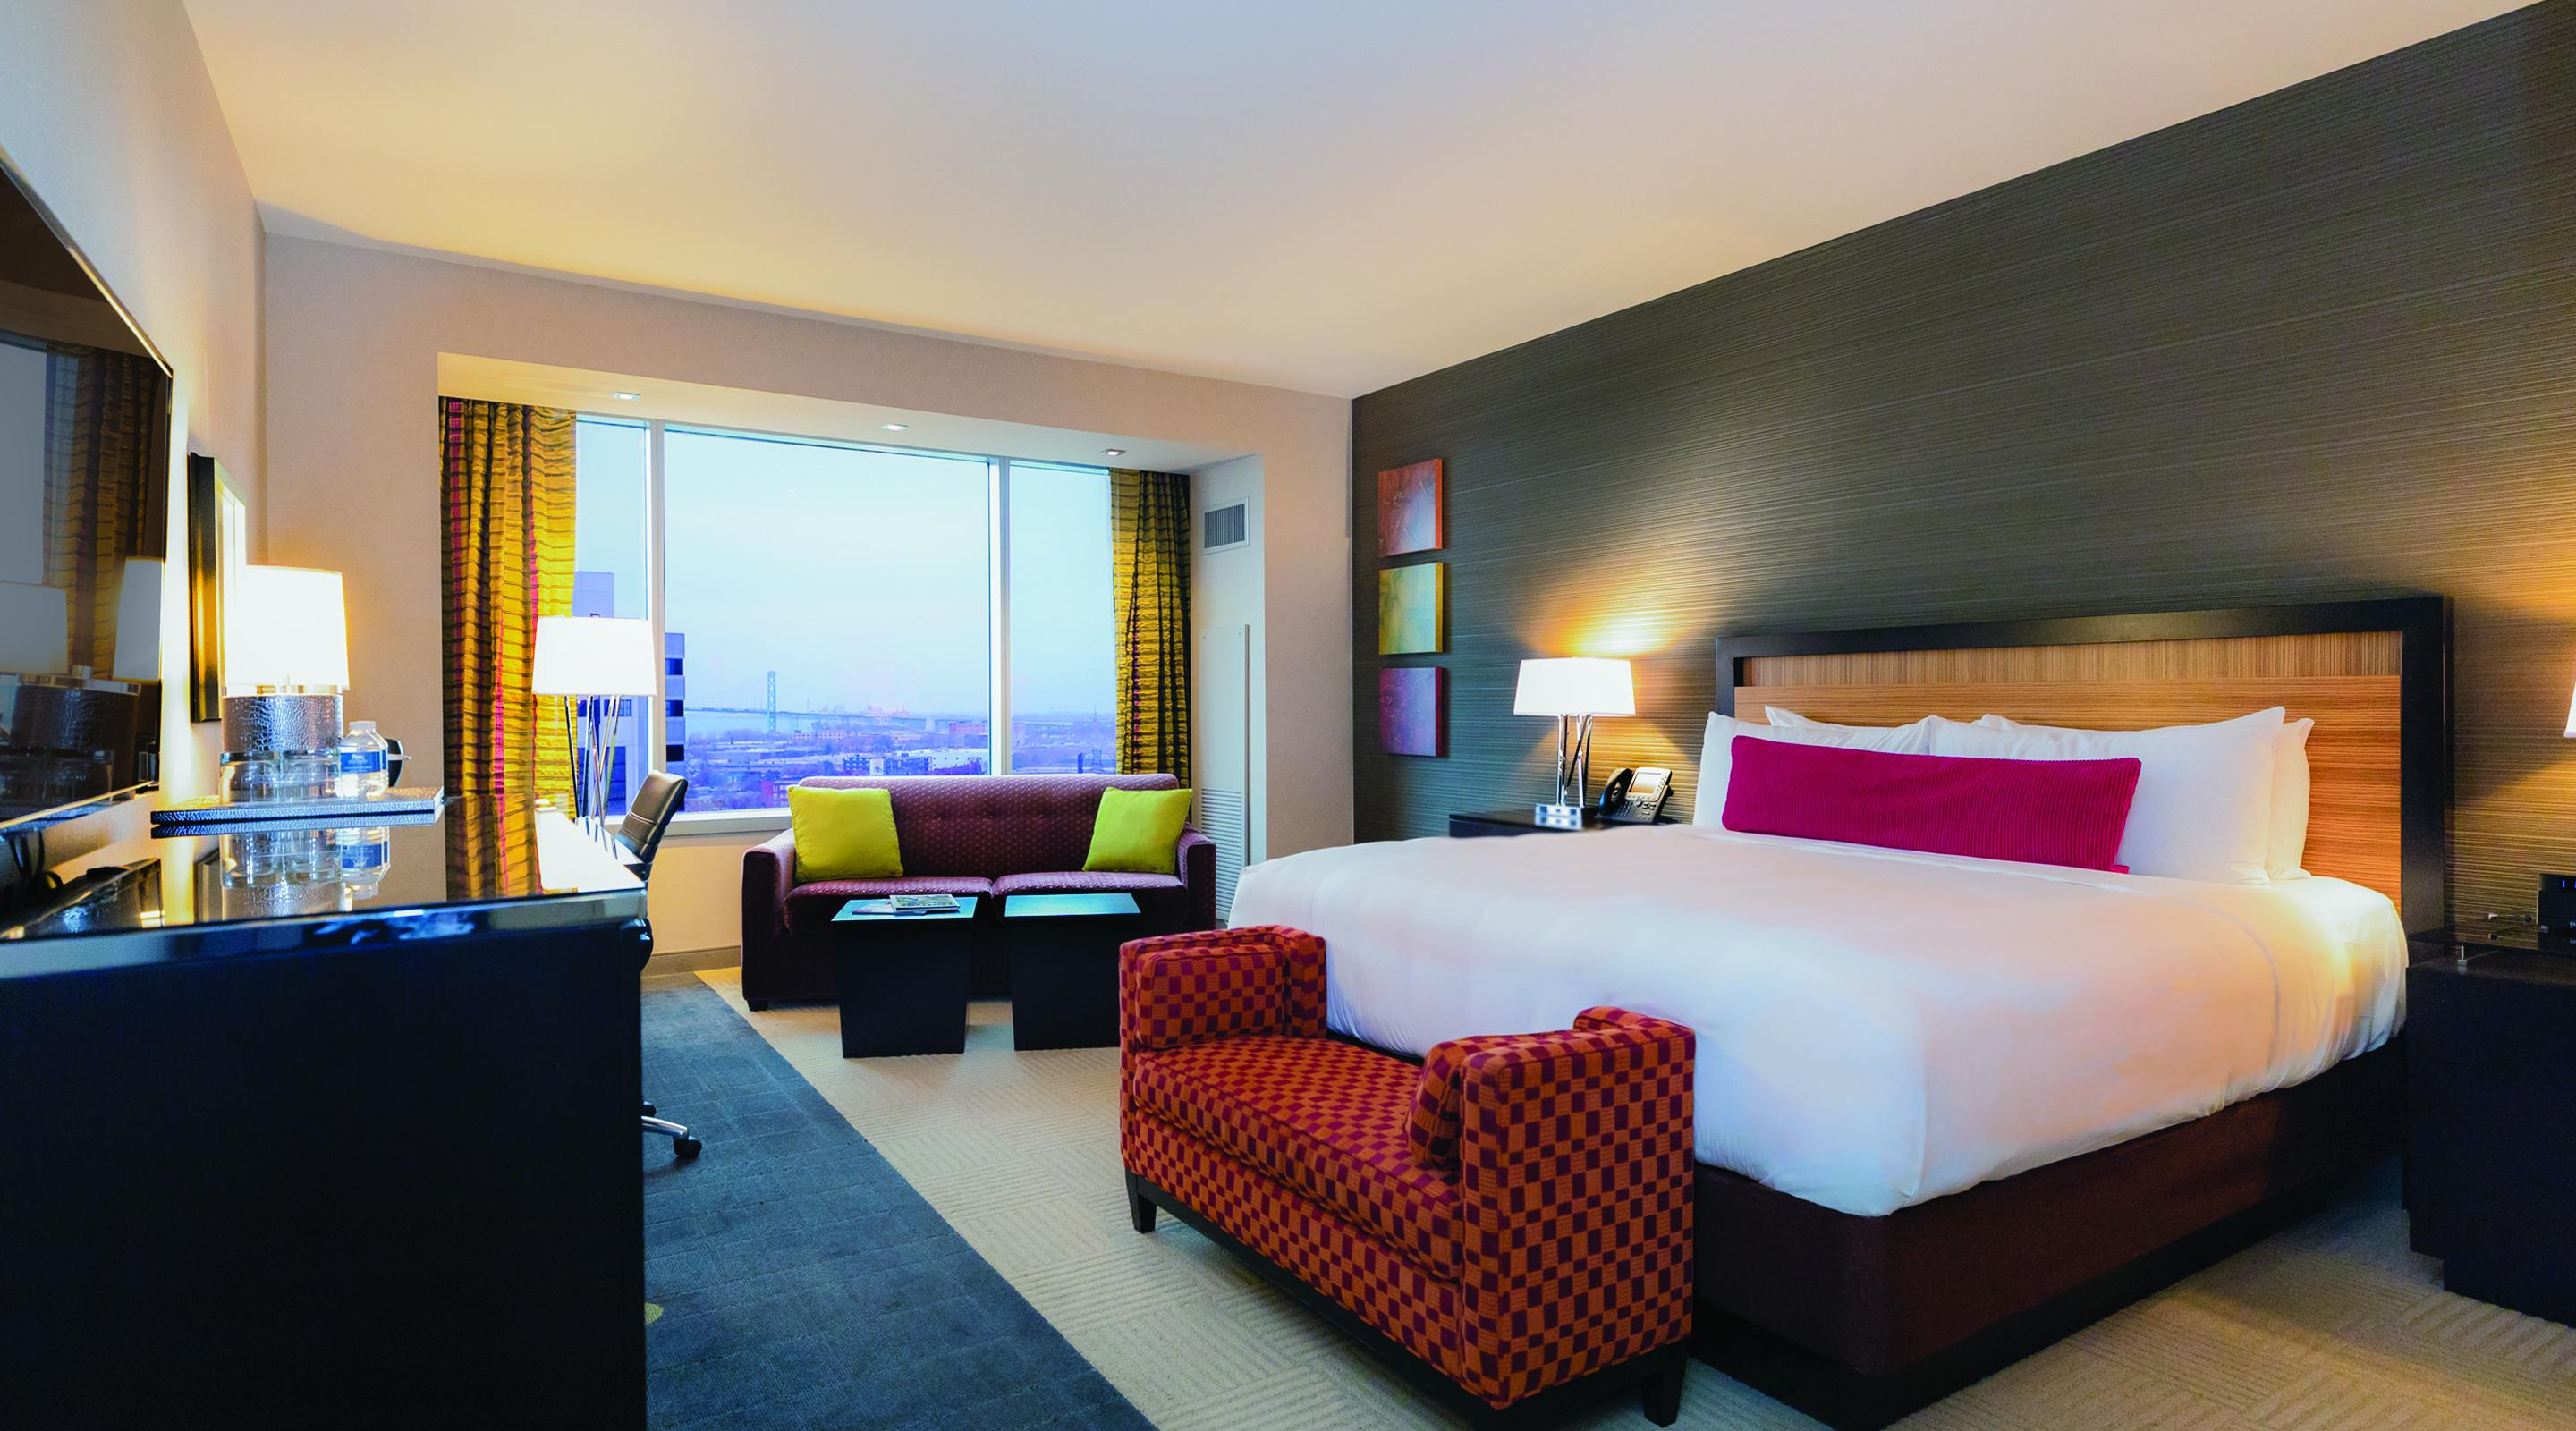 Luxury King MGM Grand Detroit - Grand king bed